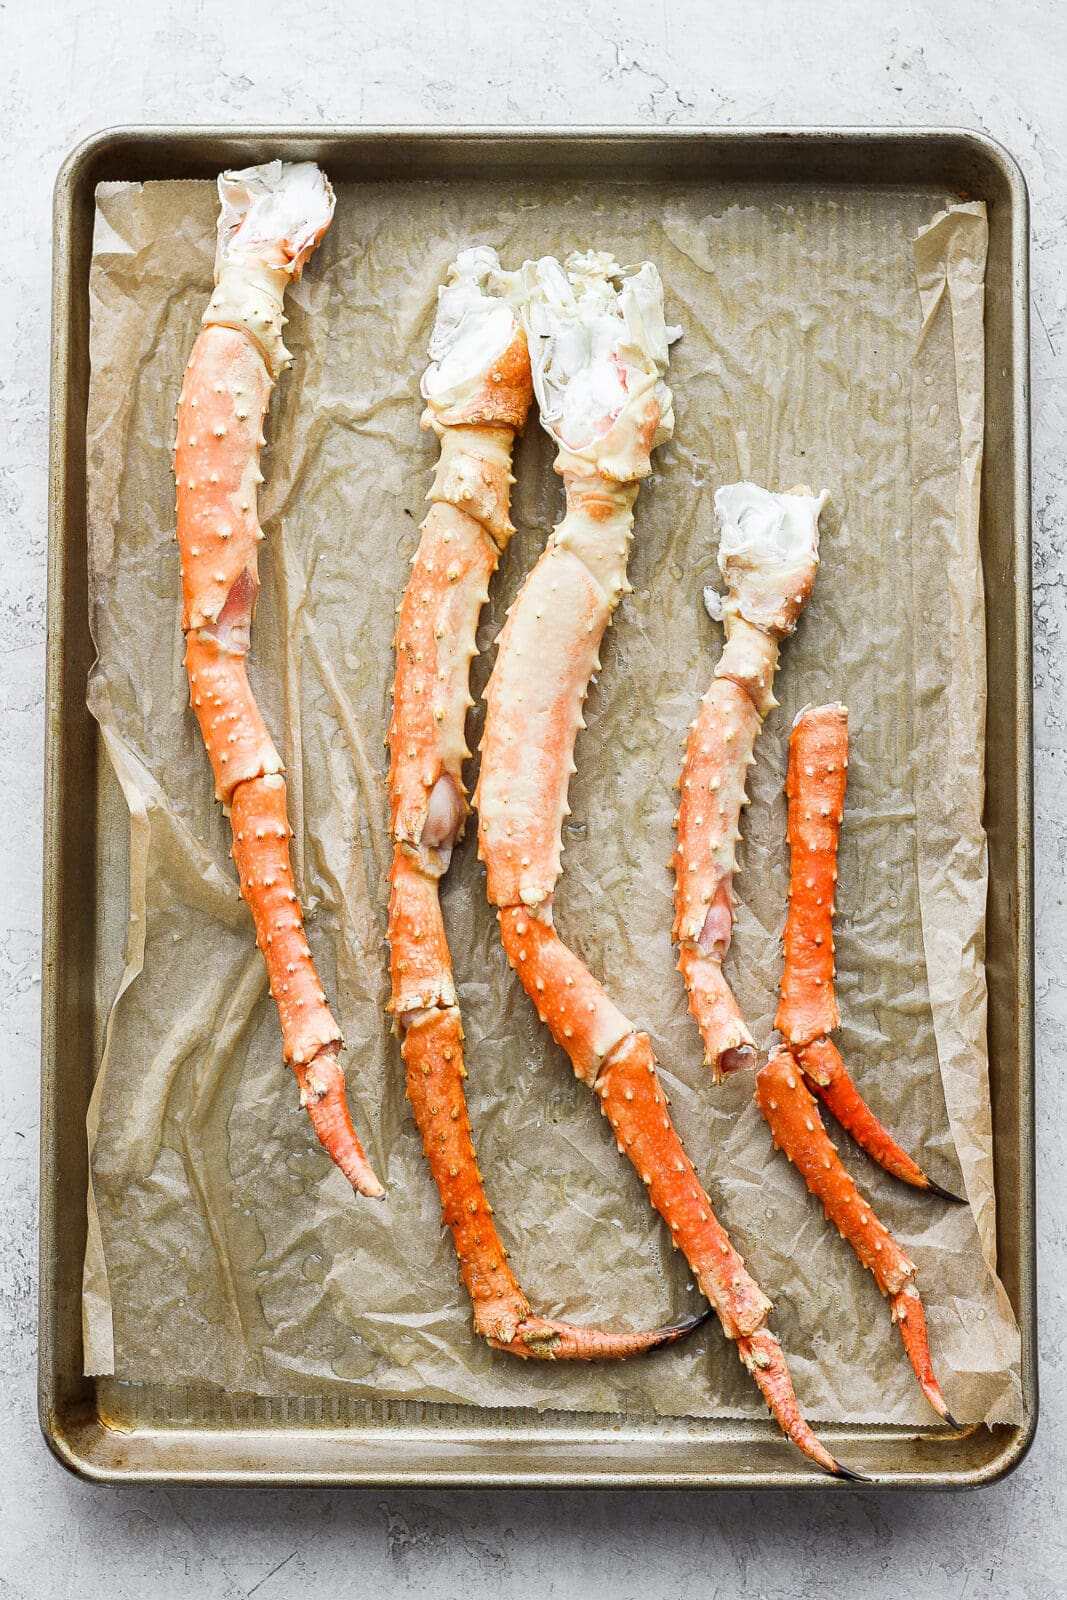 Parchment paper lined baking sheet with king crab legs on top.